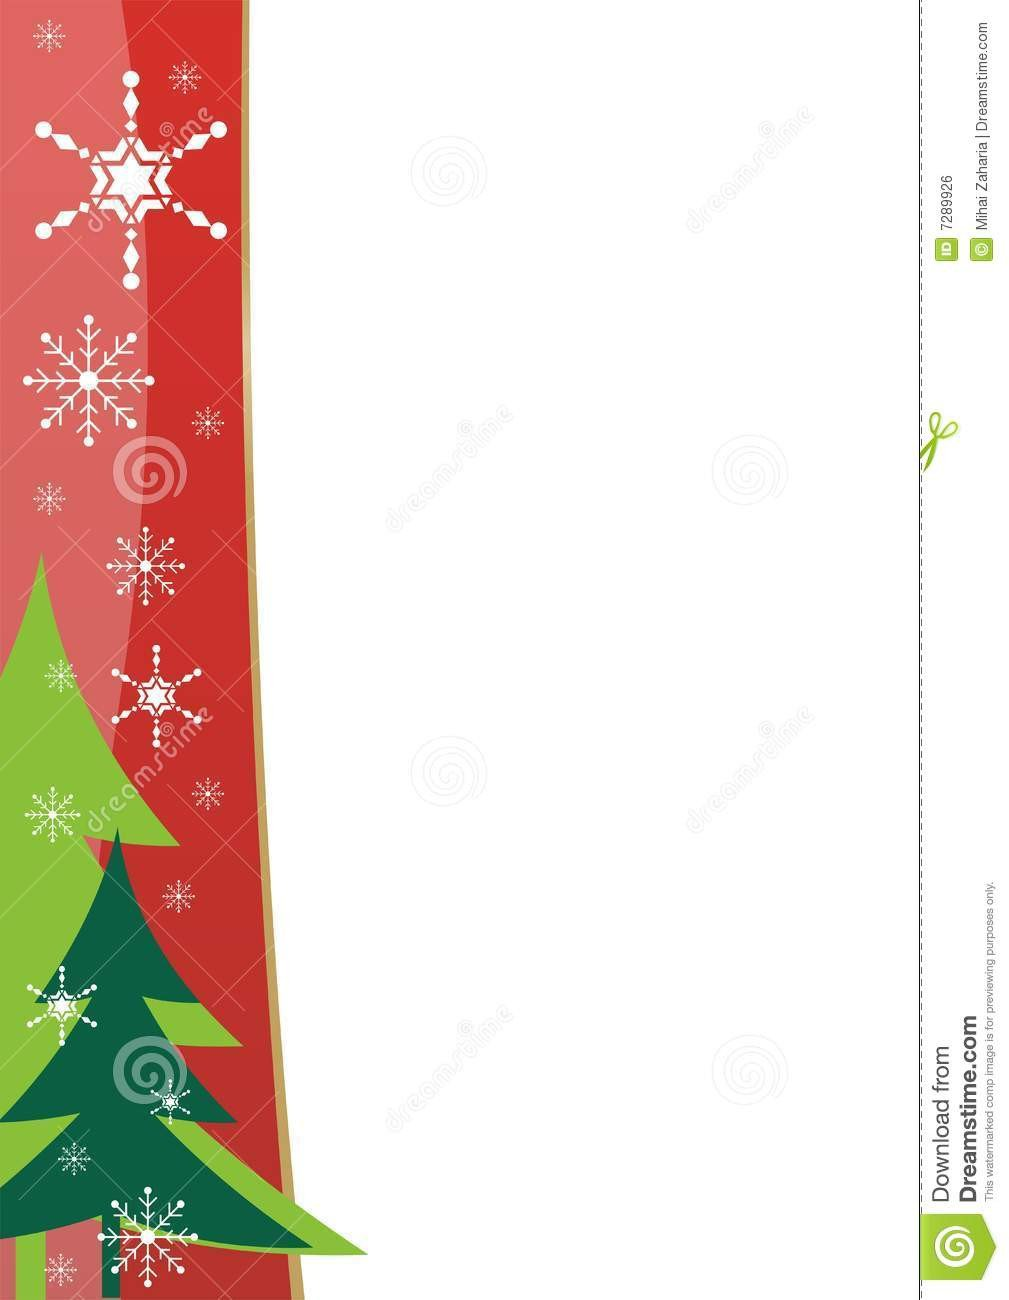 Free Christmas Templates for Word Christmas Word Templates Free Download – Festival Collections